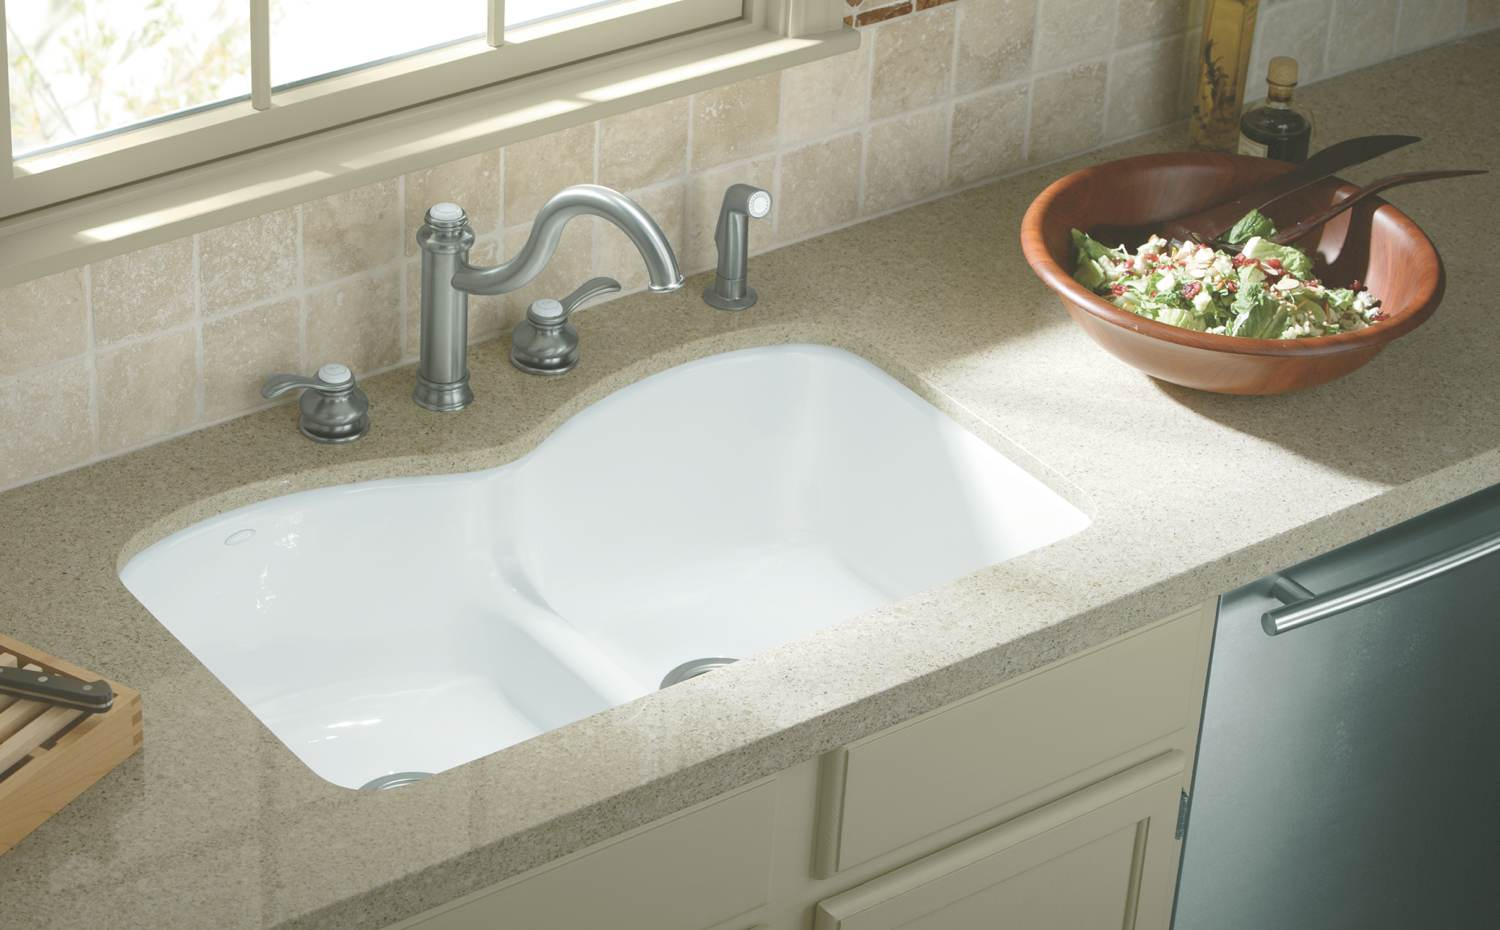 ... Undercounter Kitchen Sink, White - Double Bowl Sinks - Amazon.com